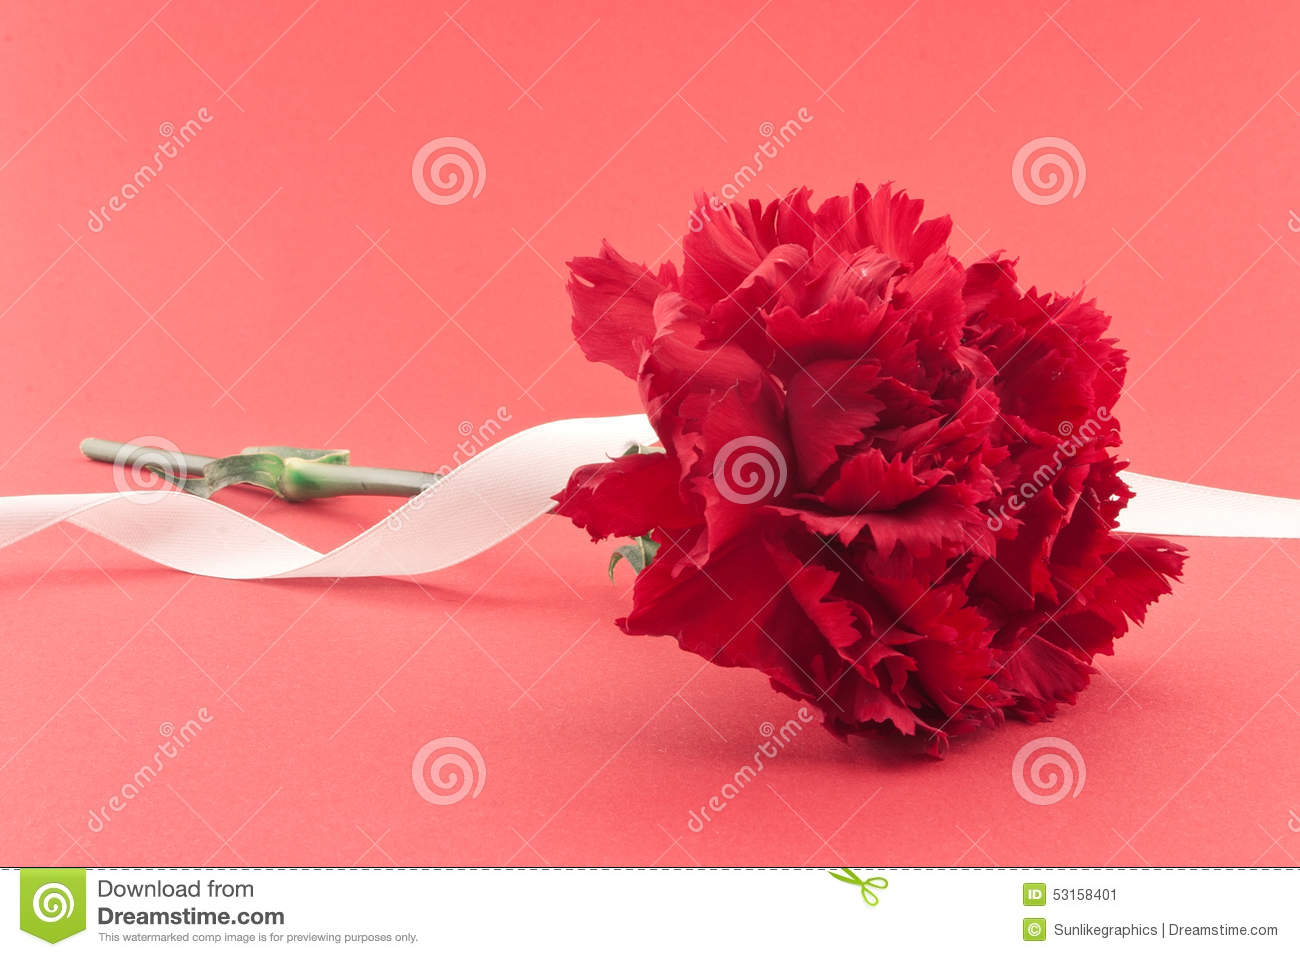 carnation divorced singles personals 9780471139768 0471139769 tax and financial planning strategies in divorce, bruce l richman 9780760738863 0760738866 central park, john s berman.